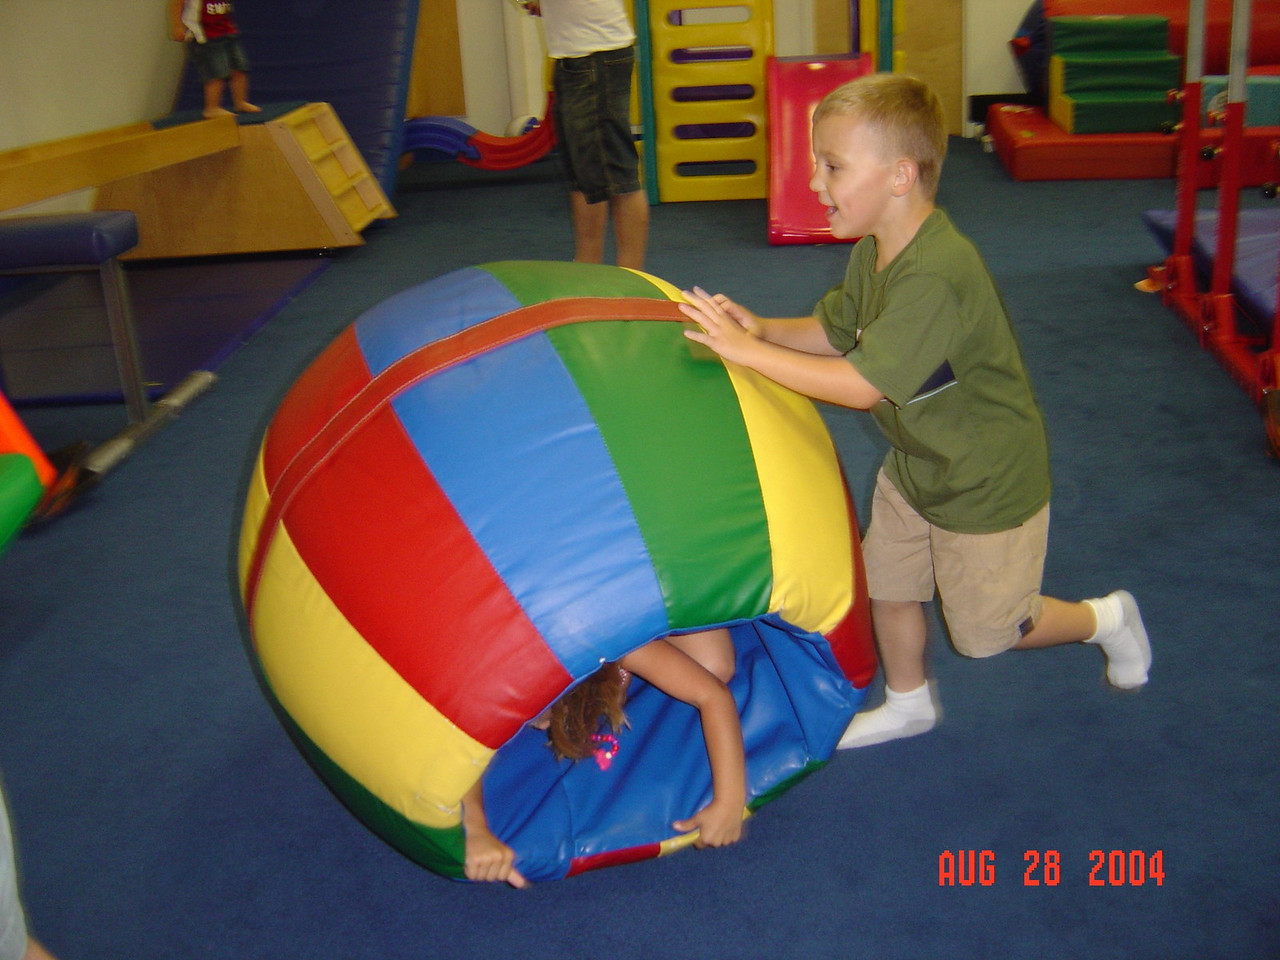 Tyler_Rolls_Natakie_at_her_party_08-28-04